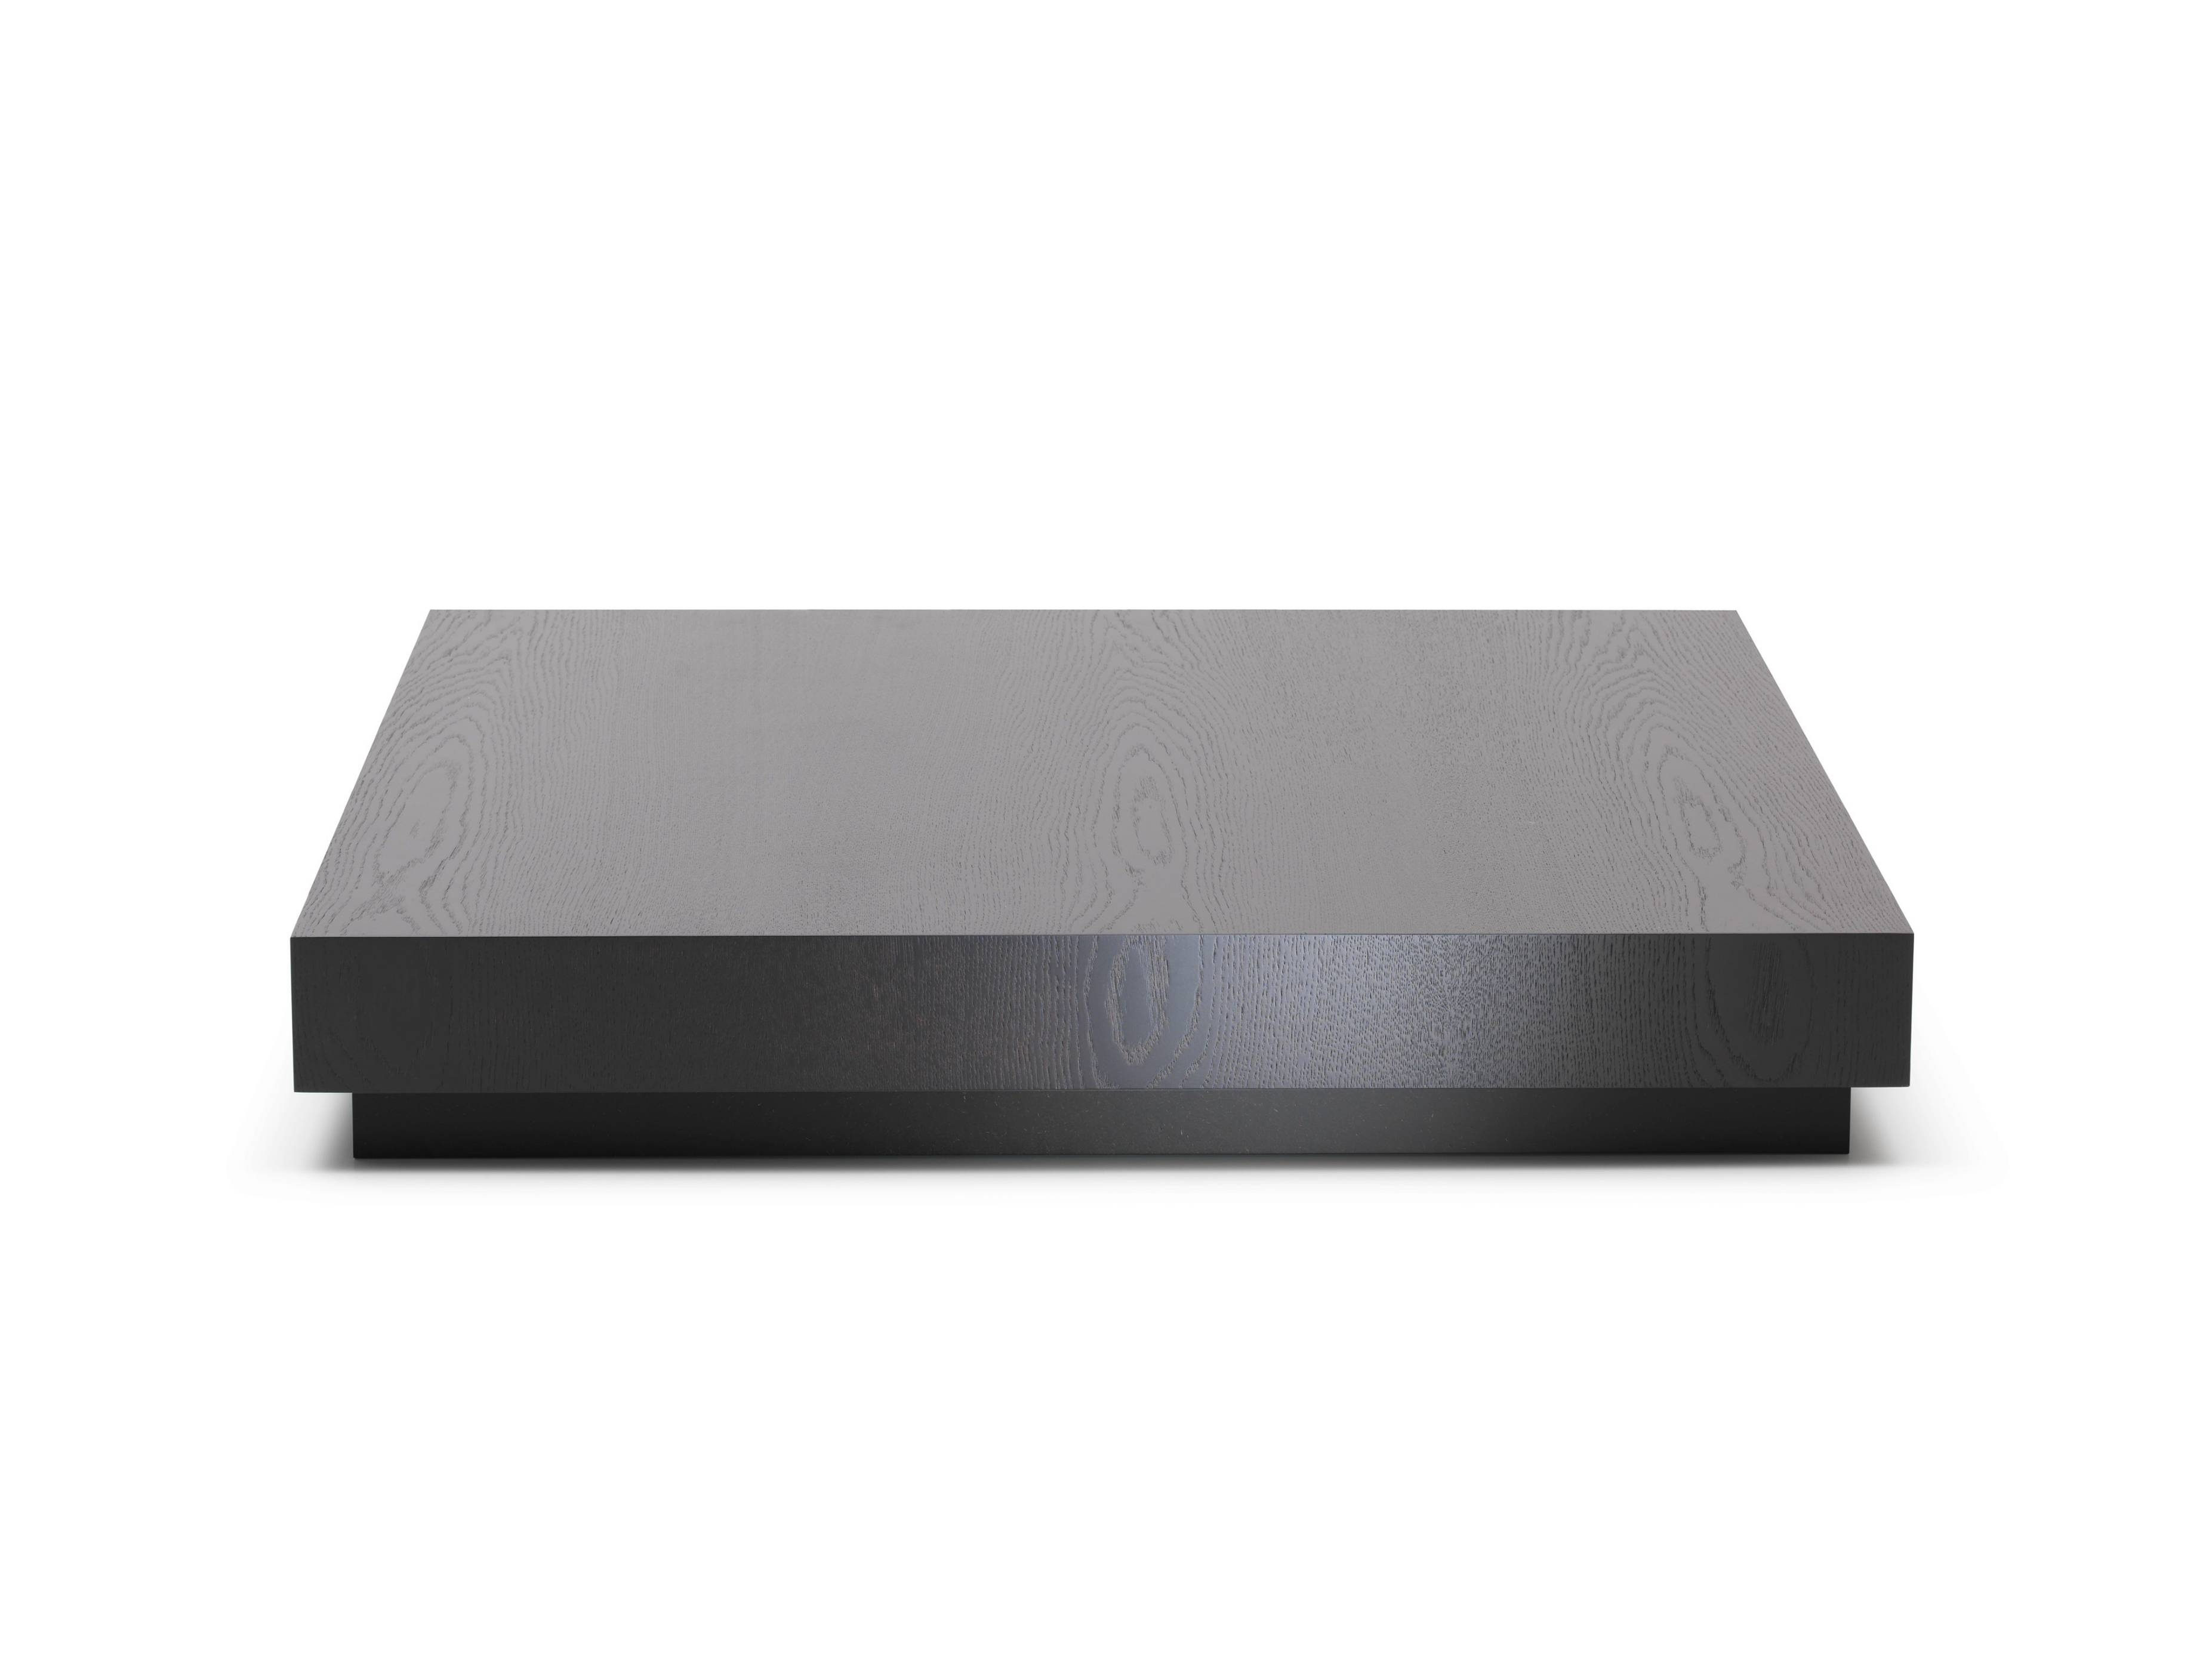 Square Wood Low Profile Coffee Table Painted With Black Color For regarding Low Wooden Coffee Tables (Image 15 of 15)